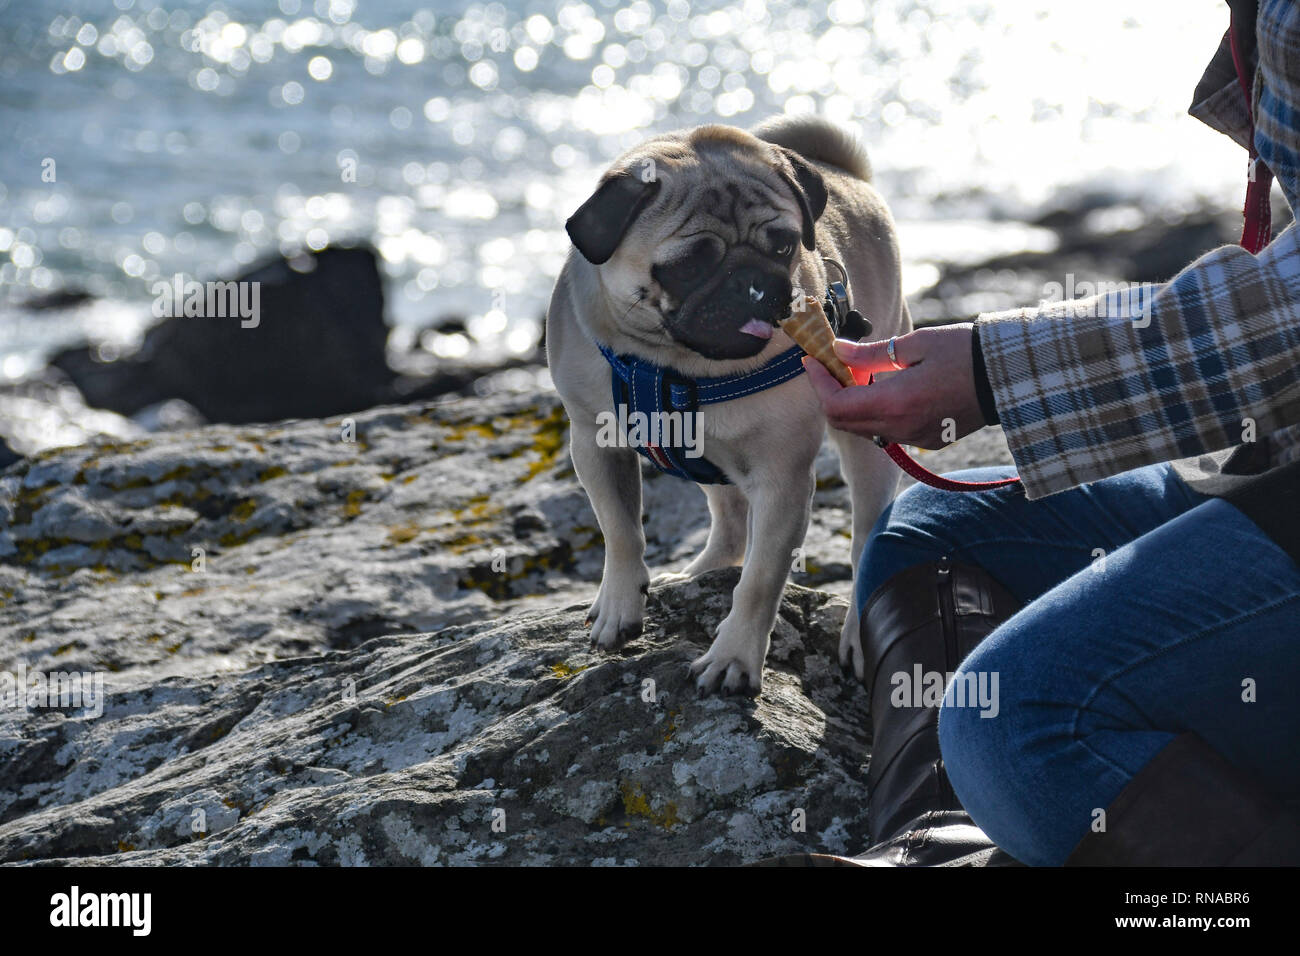 e7dc608b55e3 Dog eating ice cream with owner on a rock overlooking the sea - Stock Image